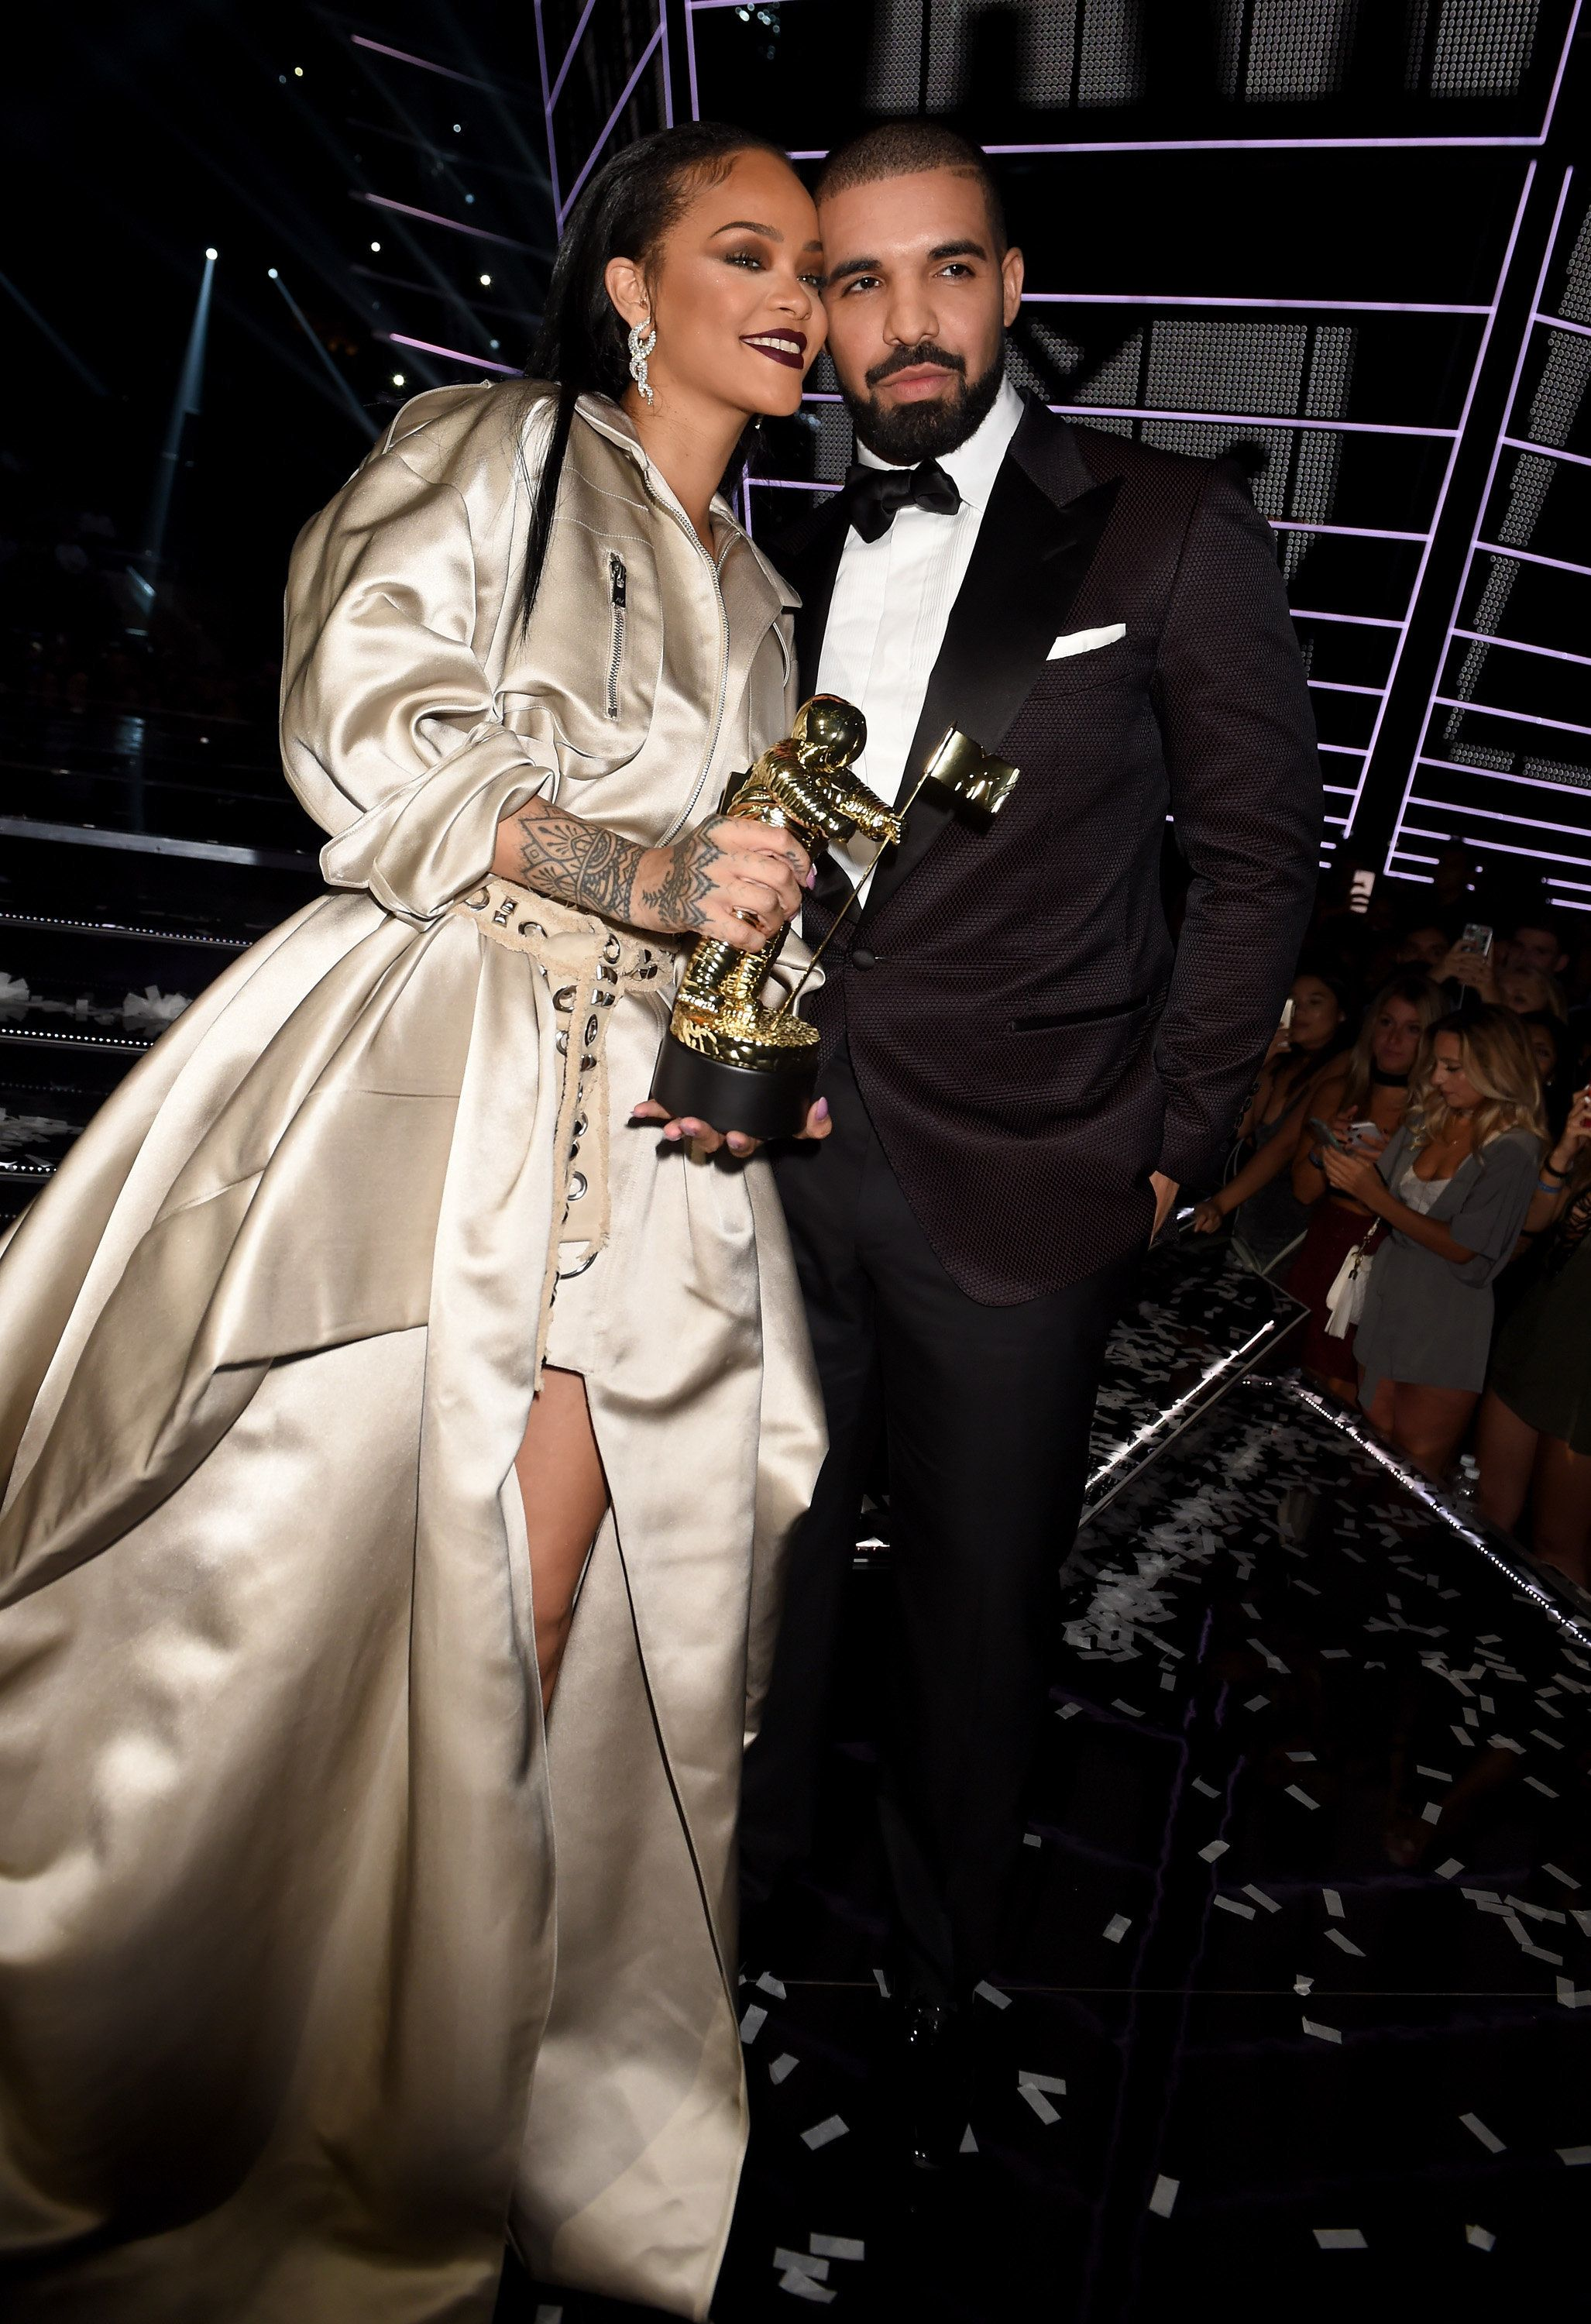 drake and rihanna dating confirmed Drake and rihanna's chemistry-laden relationship has always left fans wondering whether the 6 god and the barbadian beauty are more than just friends.